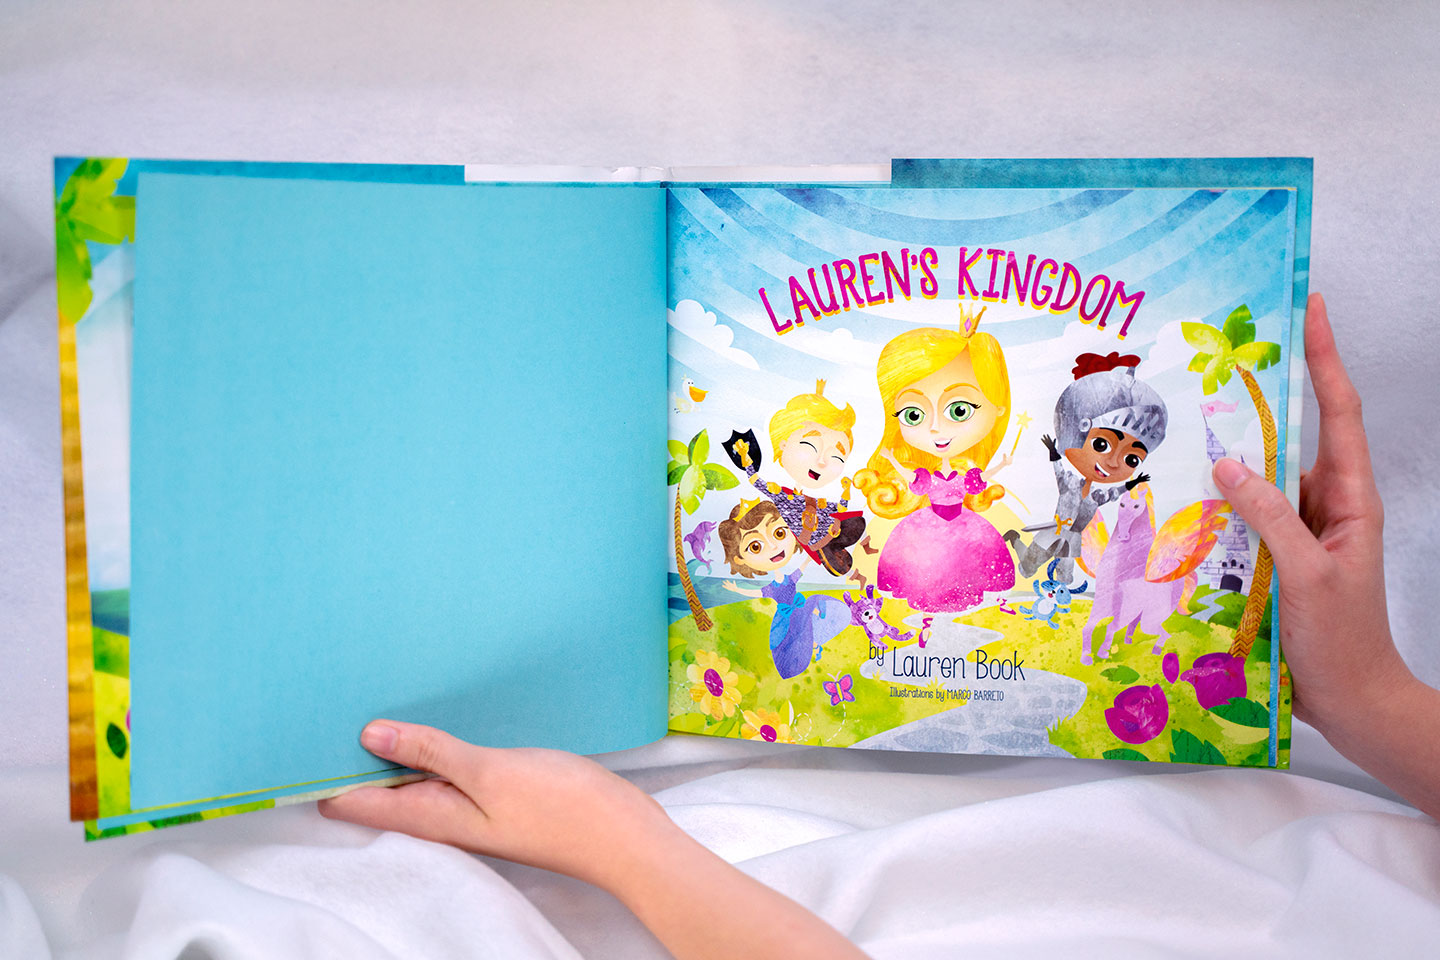 Colorful illustration designed for the children's book, Lauren's Kingdom.